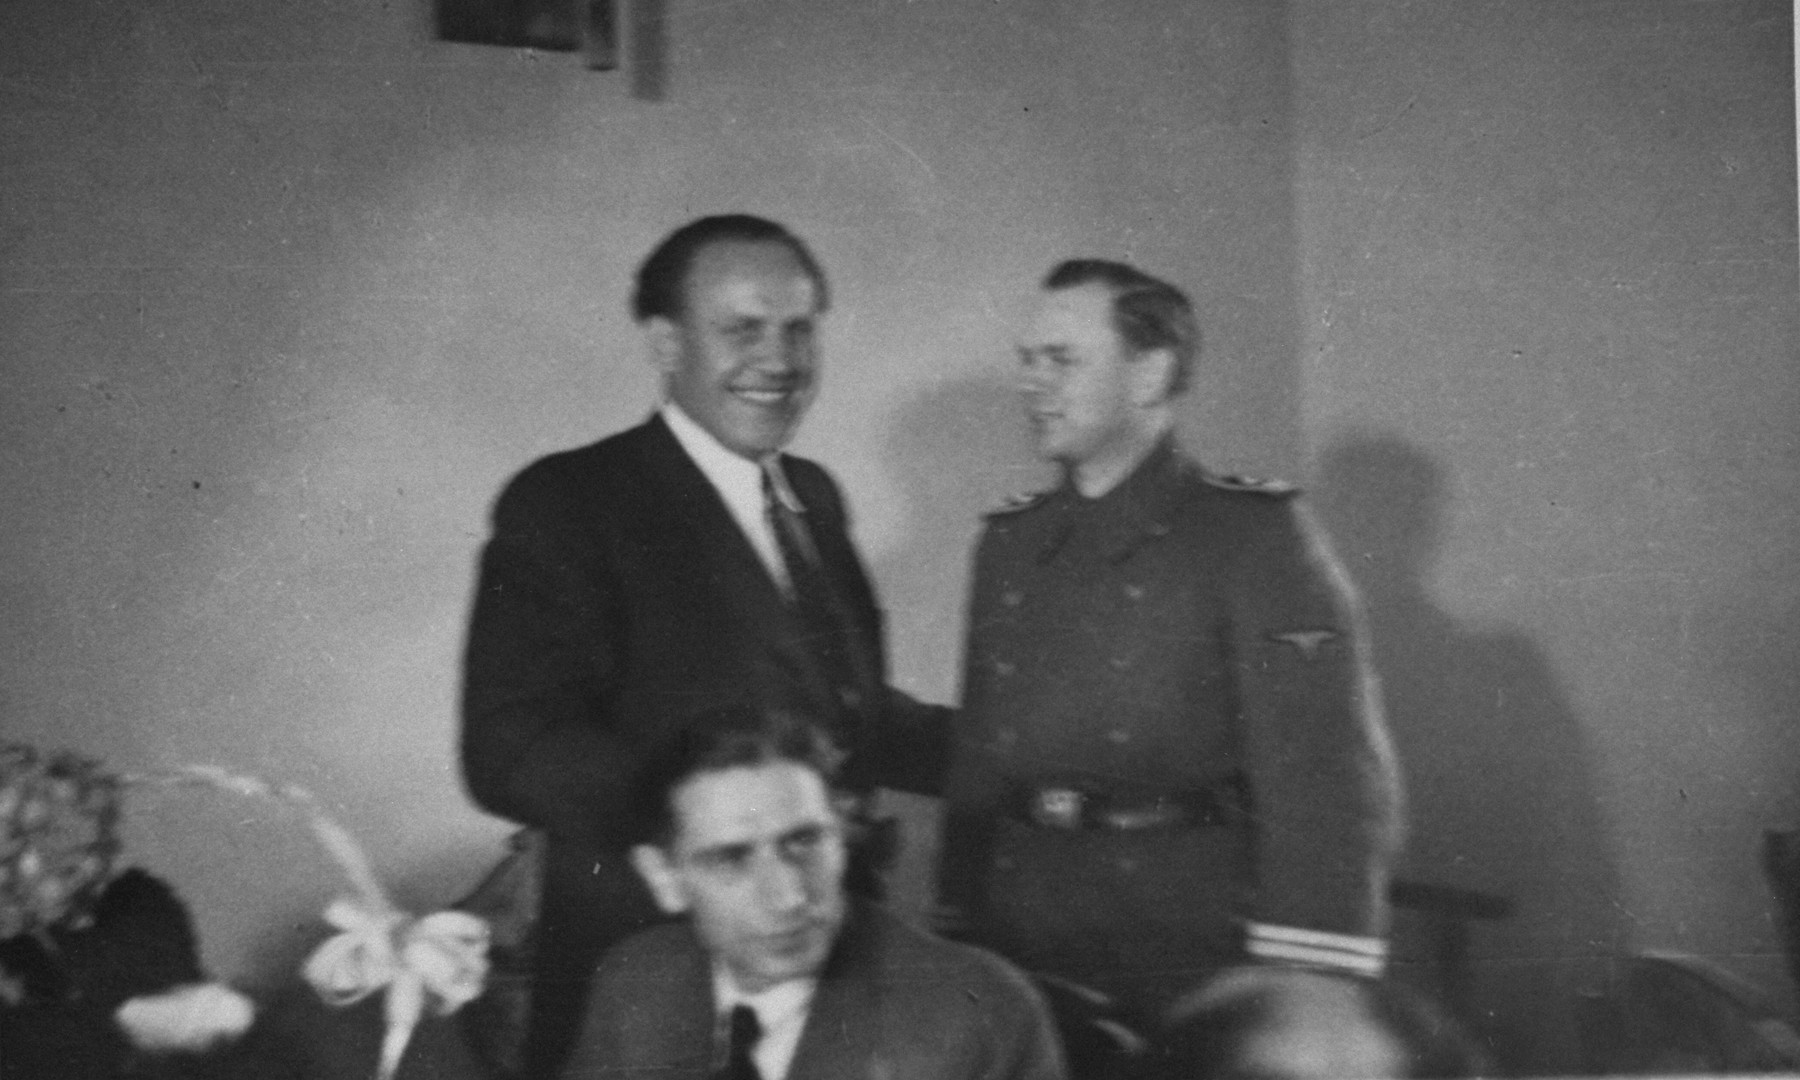 Oskar Schindler at a dinner party in Krakow with an SS officer.    At parties like this, Schindler made contact with various SS and German officials, which often led to tips about impending deportations that enabled him to save his laborers.